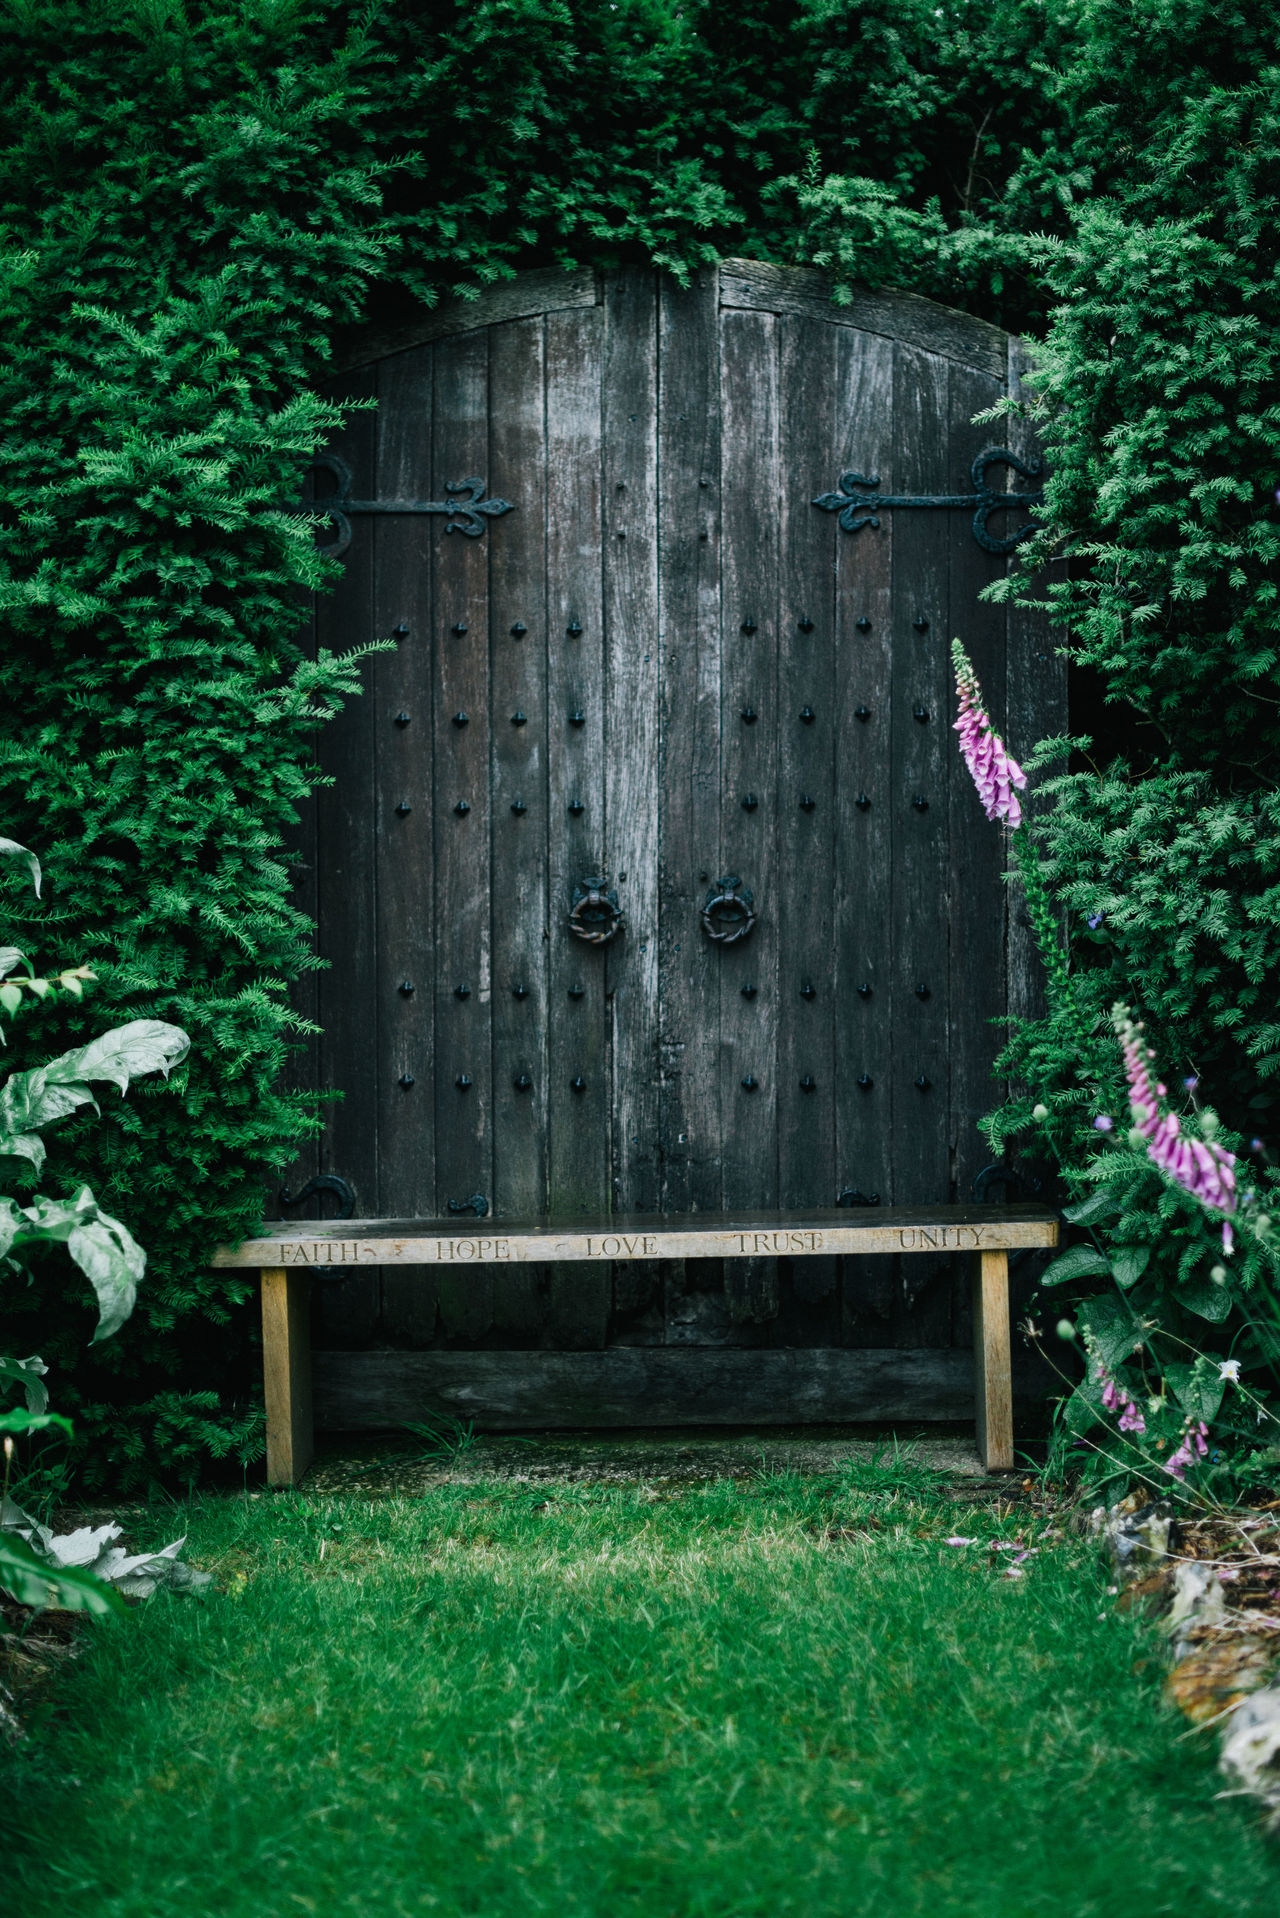 Architecture Building Exterior Built Structure Close-up Day Door Flower Grass Green Green Color Green Color Growing Plants Growth Ivy Lonely Nature No People Outdoors Plant Single Flower Single Life  Single Object Tree Wood - Material